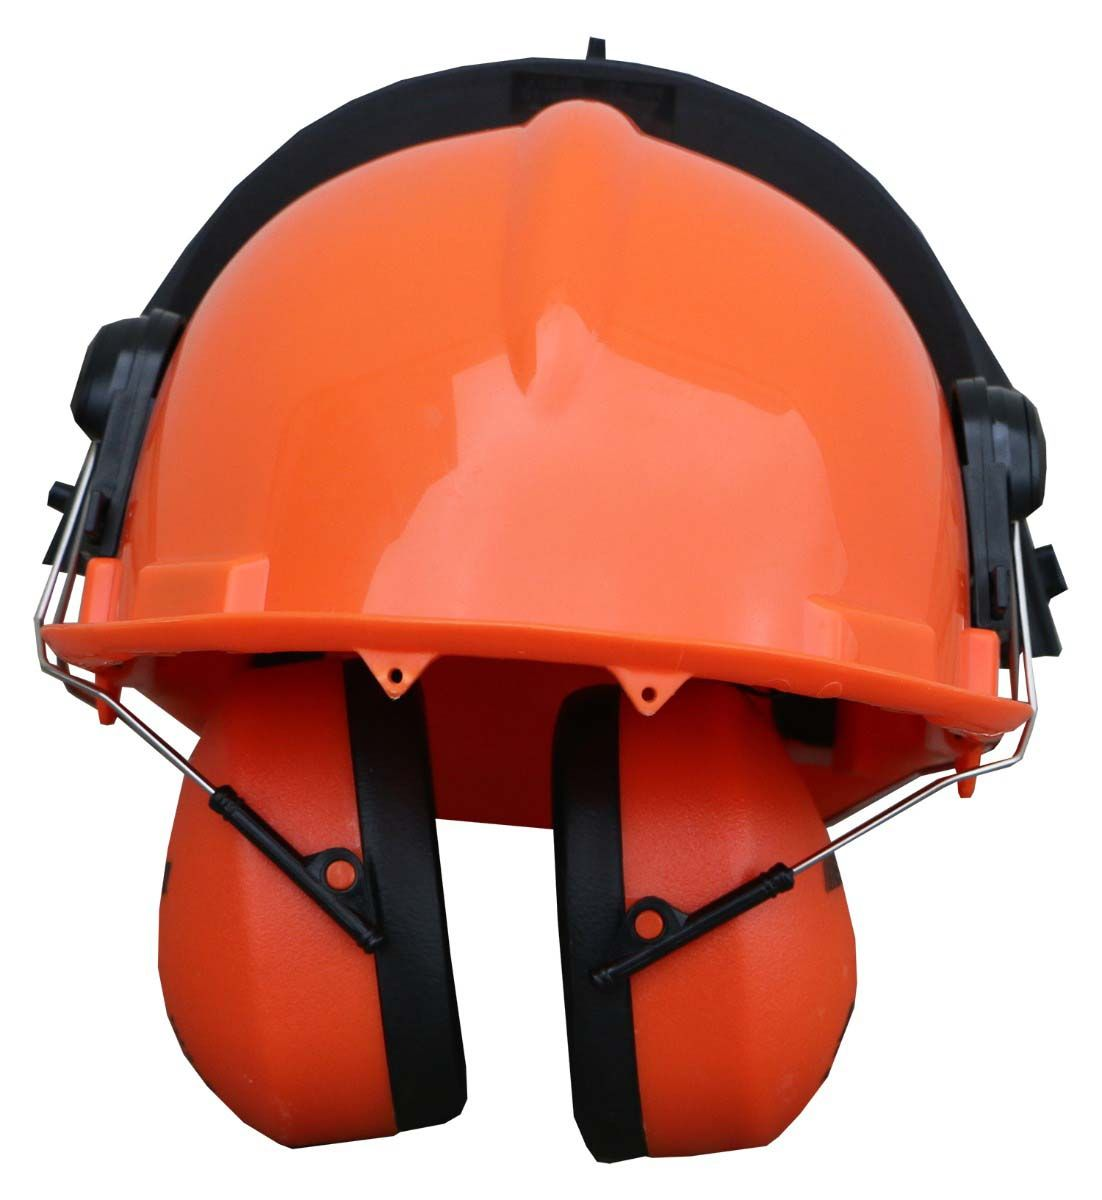 Rear View of ECHO Safety Helmet